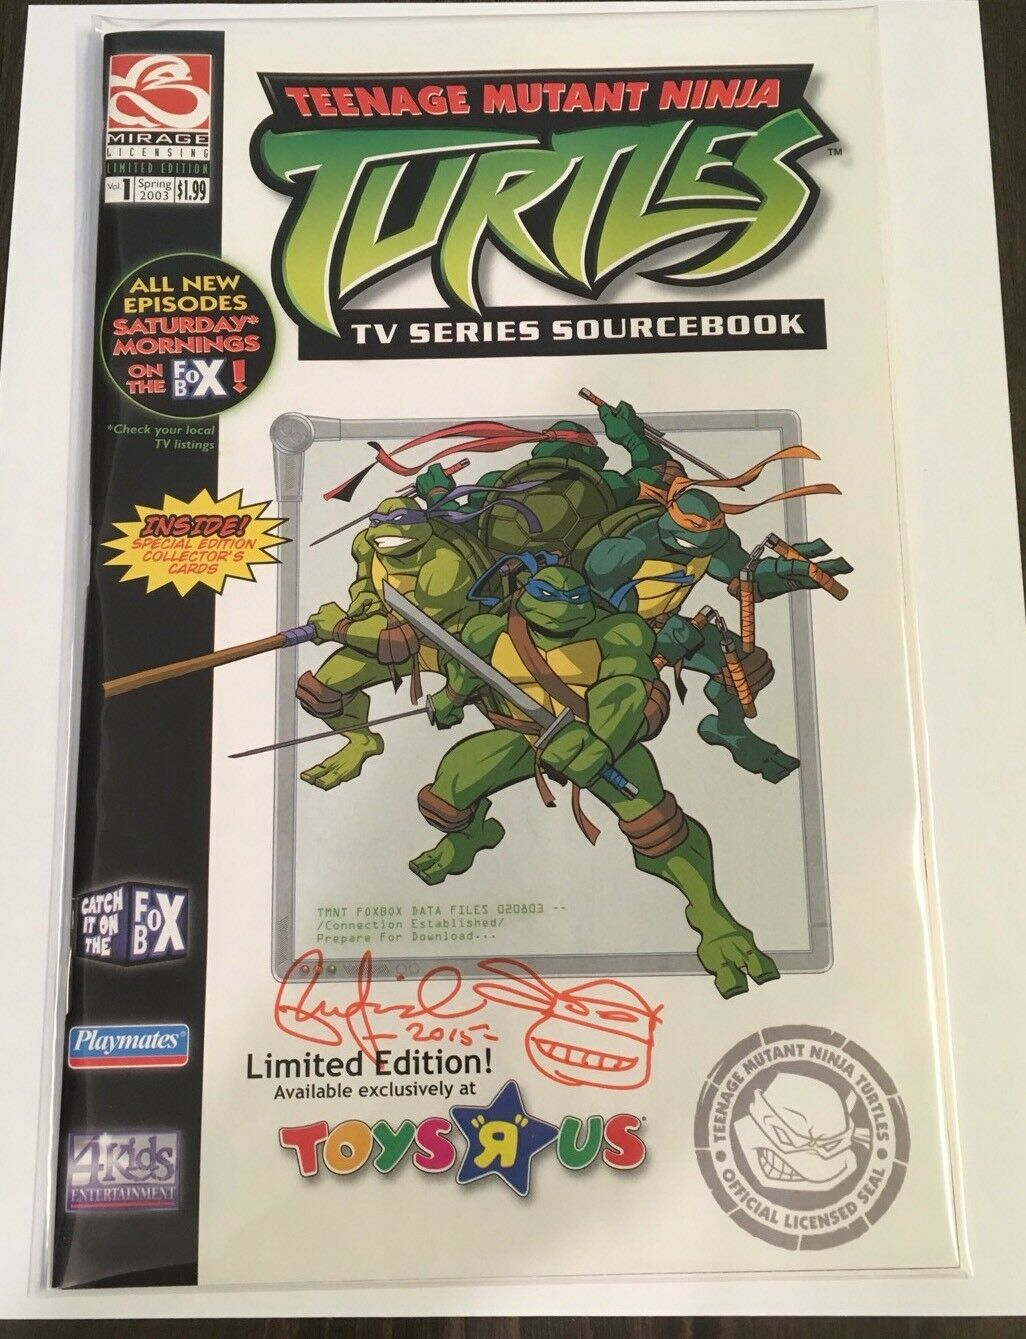 Tmnt Teenage Mutant Ninja Turtles Sourcebook Toys R Us Ex. firmado Por Peter Laird